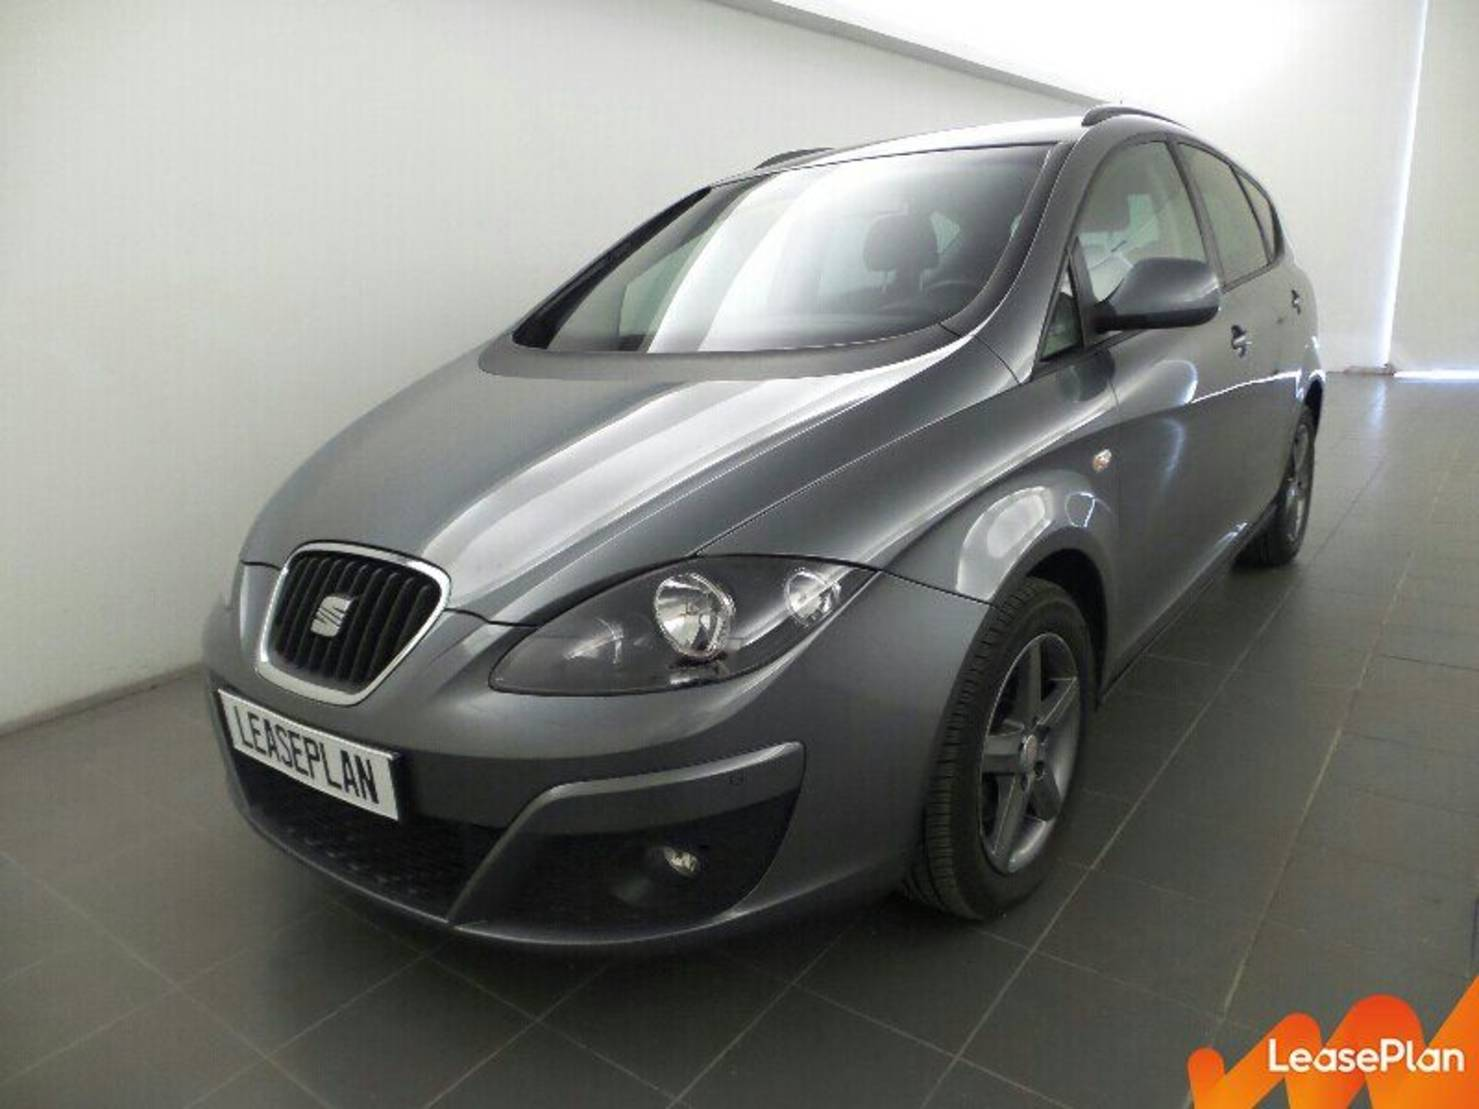 Seat Altea XL 1.6 TDI 105, I-Tech DSG detail1